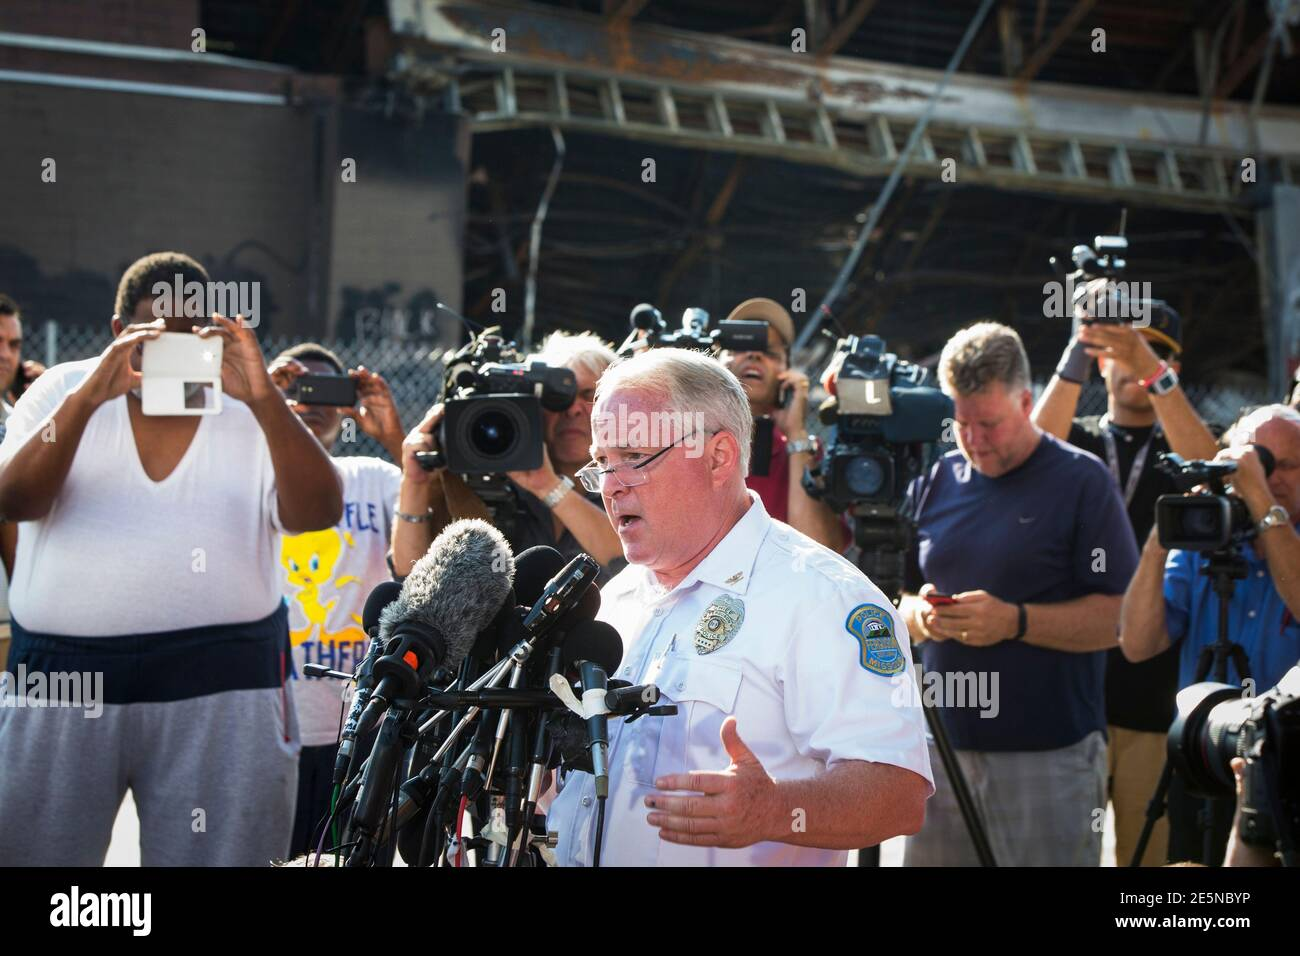 Ferguson Police Chief Thomas Jackson announces the name of the officer involved in the shooting of Michael Brown as officer Darren Wilson, in Ferguson, Missouri August 15, 2014. The briefing was held near a QuikTrip convenience store that had been burned amid protests over the shooting of Brown, 18, last Saturday. REUTERS/Lucas Jackson (UNITED STATES - Tags: CIVIL UNREST CRIME LAW) Stock Photo